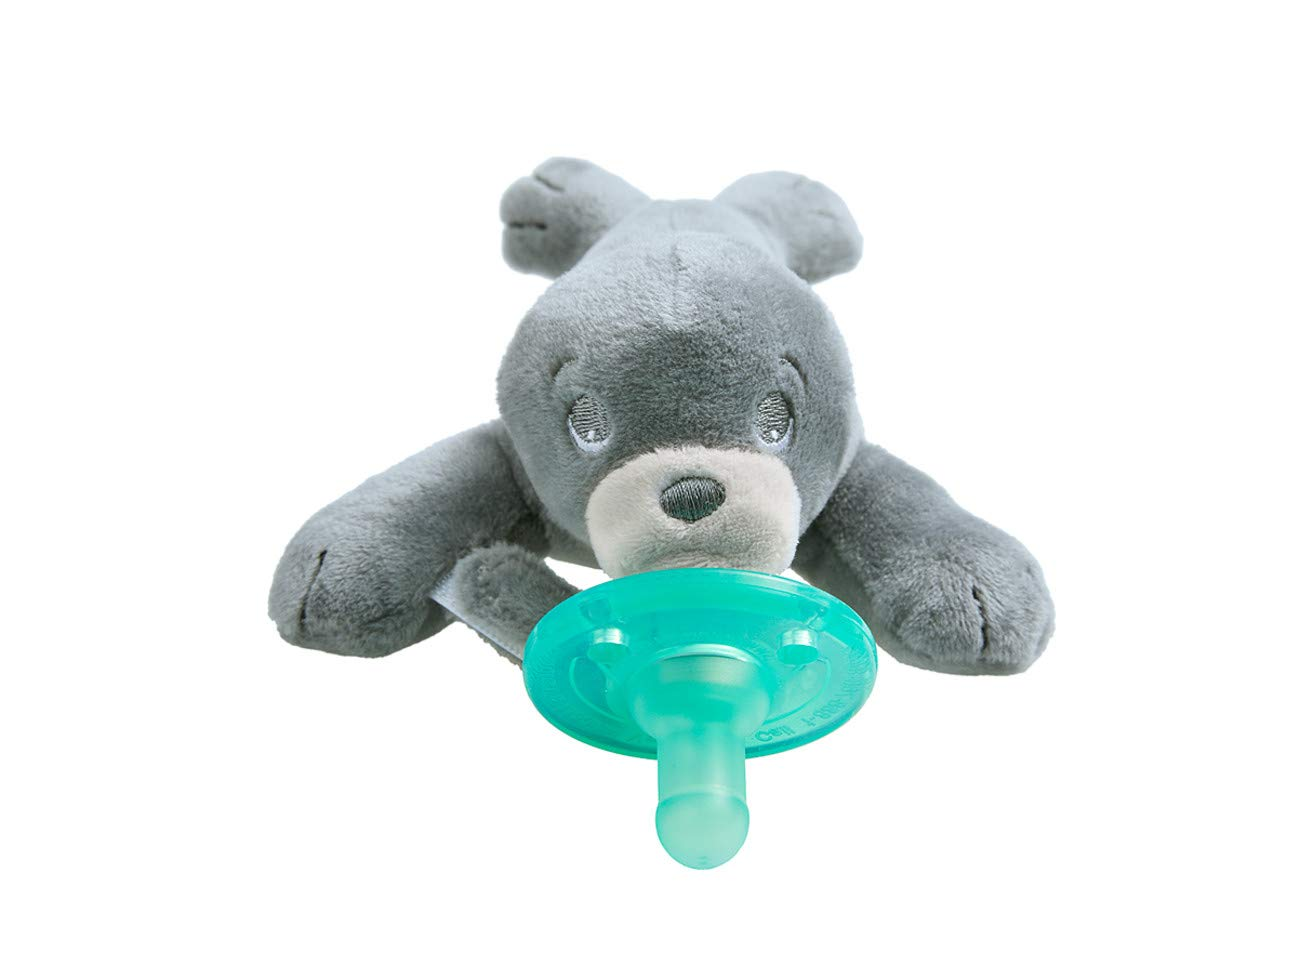 Philips Avent Soothie Snuggle Pacifier, 0-3 Months, Seal, SCF347/04